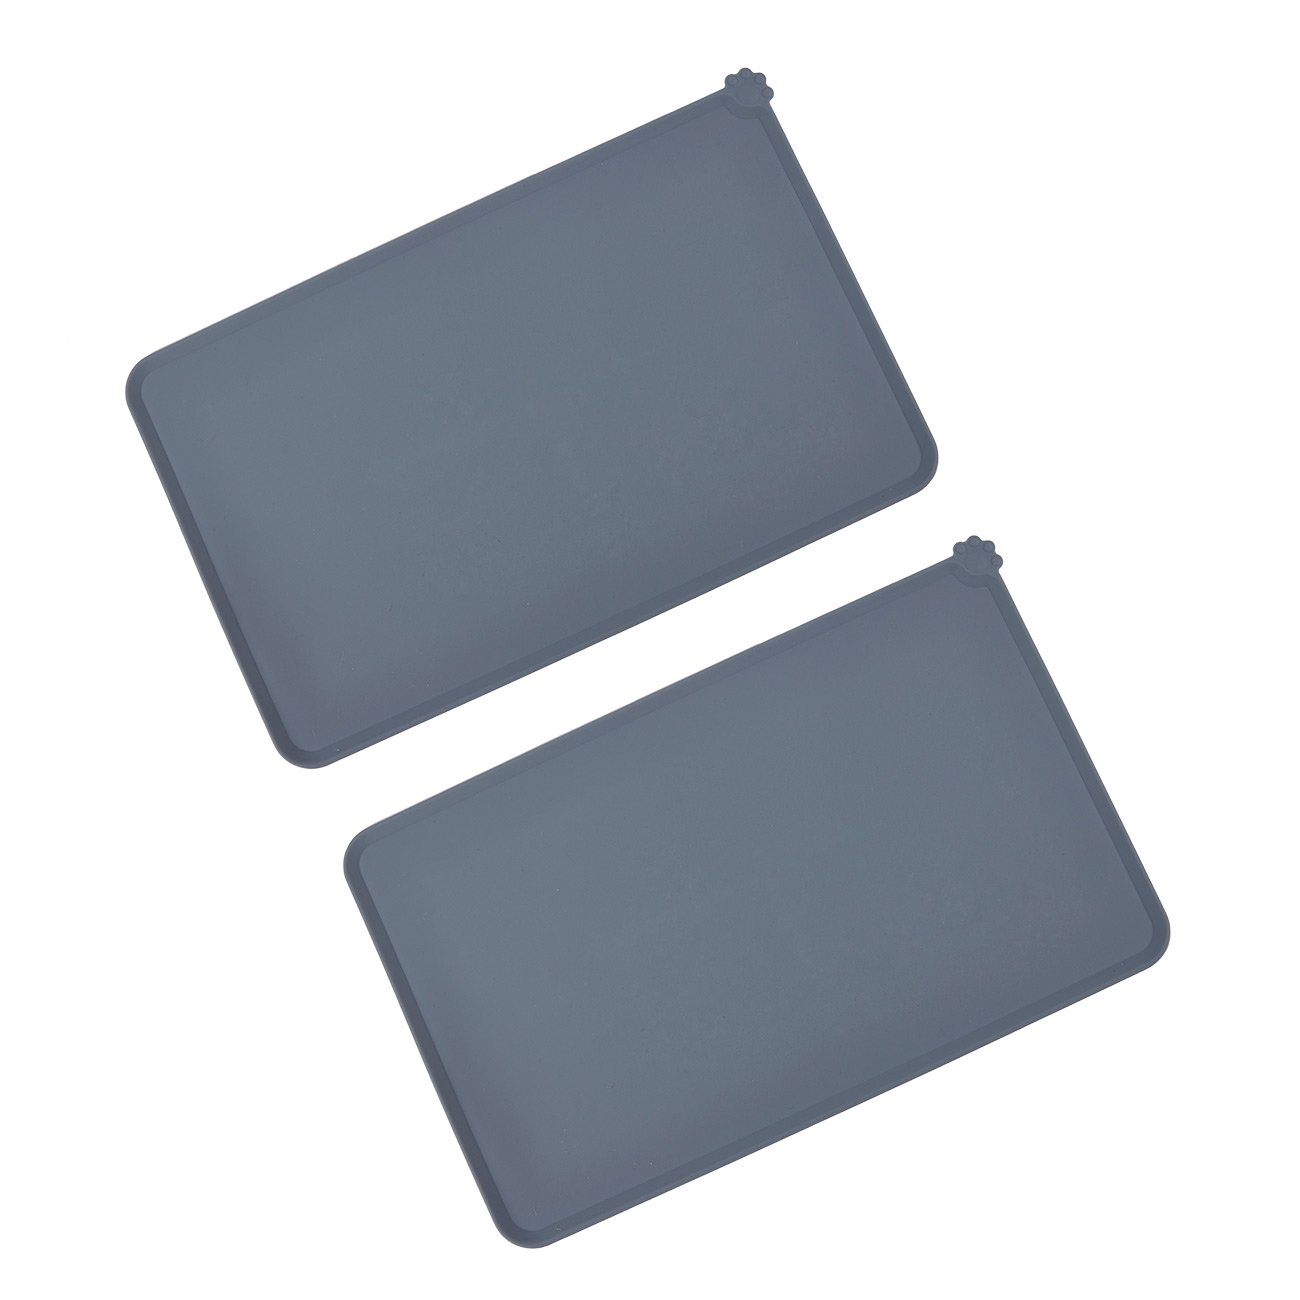 Juvale Pet Food Tray - 2-Pack Silicone Pet Food Mat, Waterproof Pet Feeding Tray with Non-Slip Bottom and Raised Edges, Grey